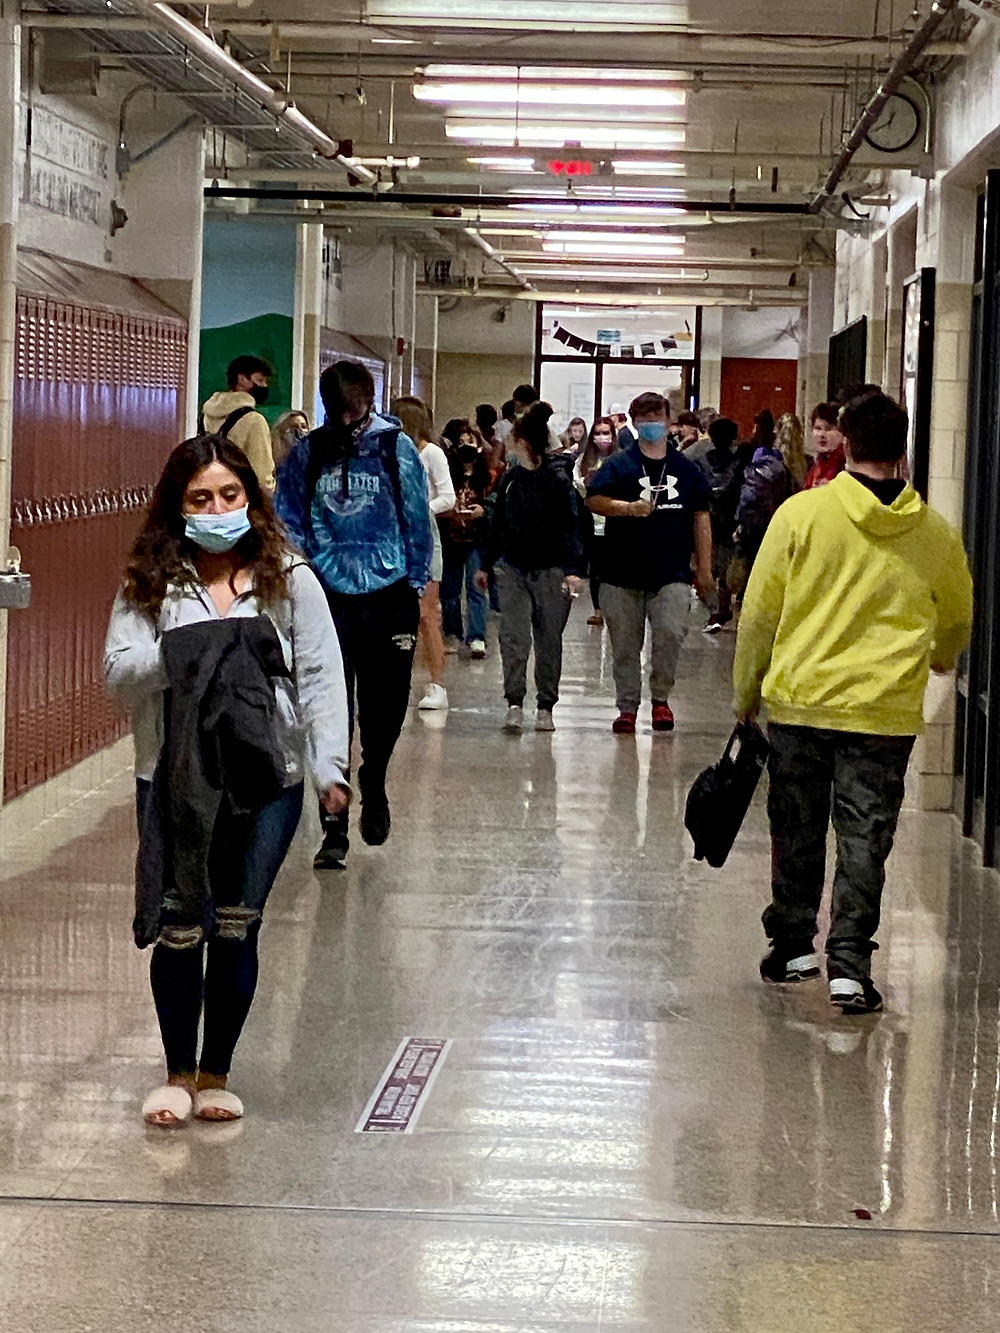 More students have began to fill the halls of West High School